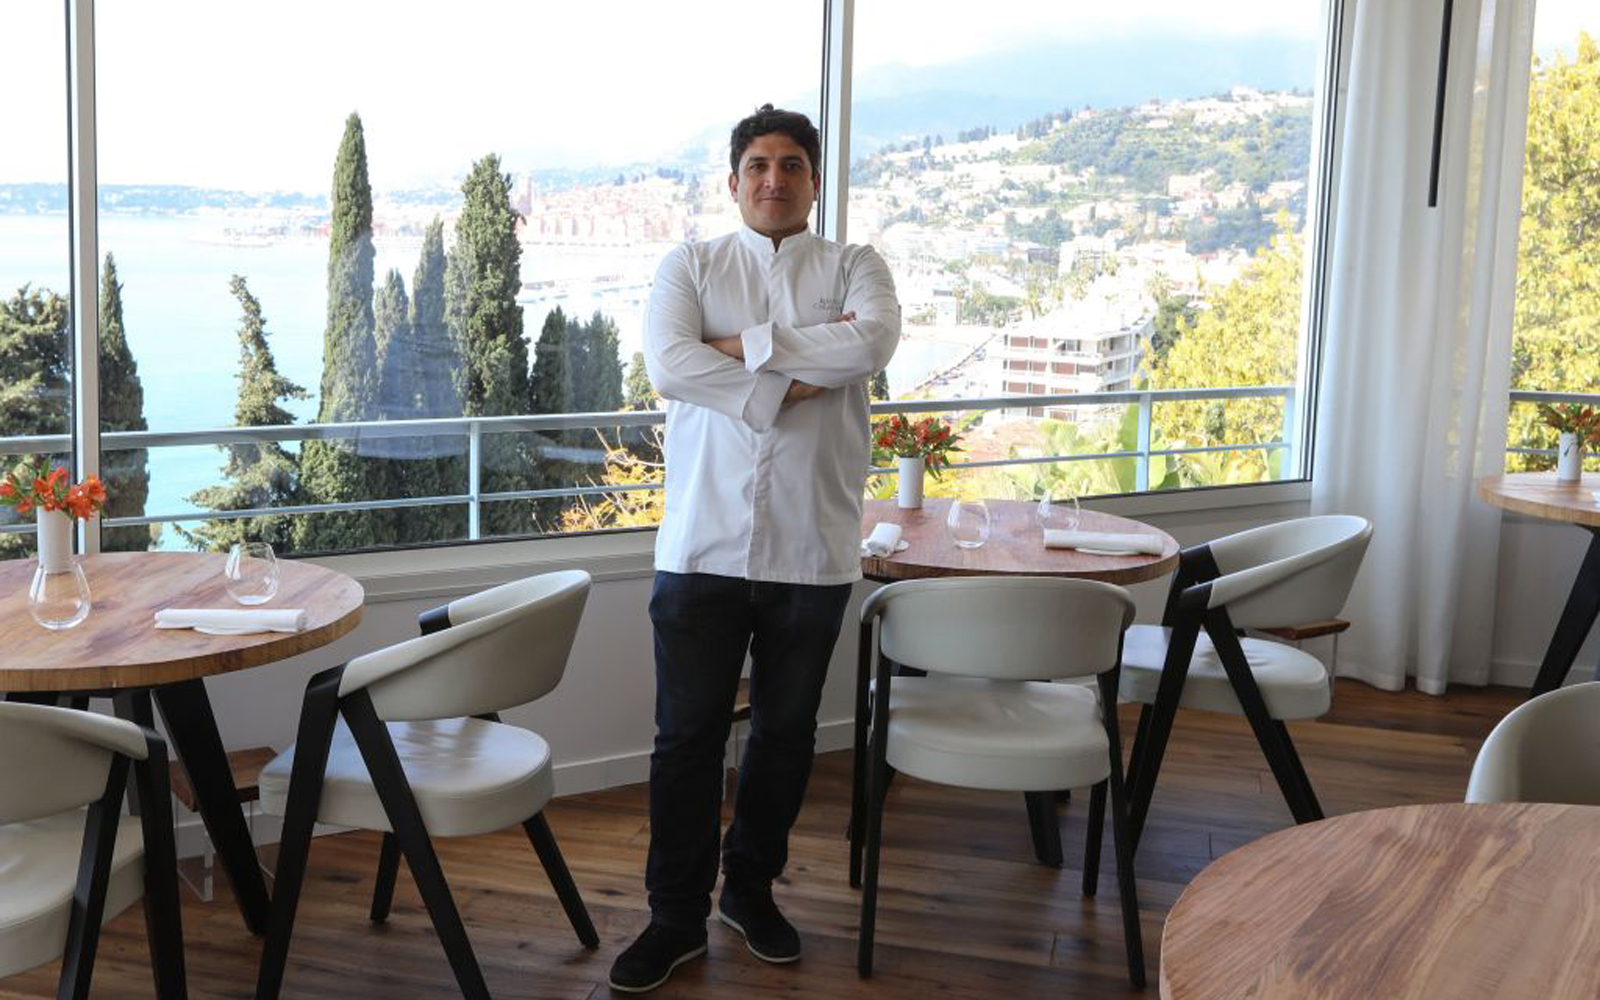 This Restaurant on the French Riviera Was Just Named the Best in the World